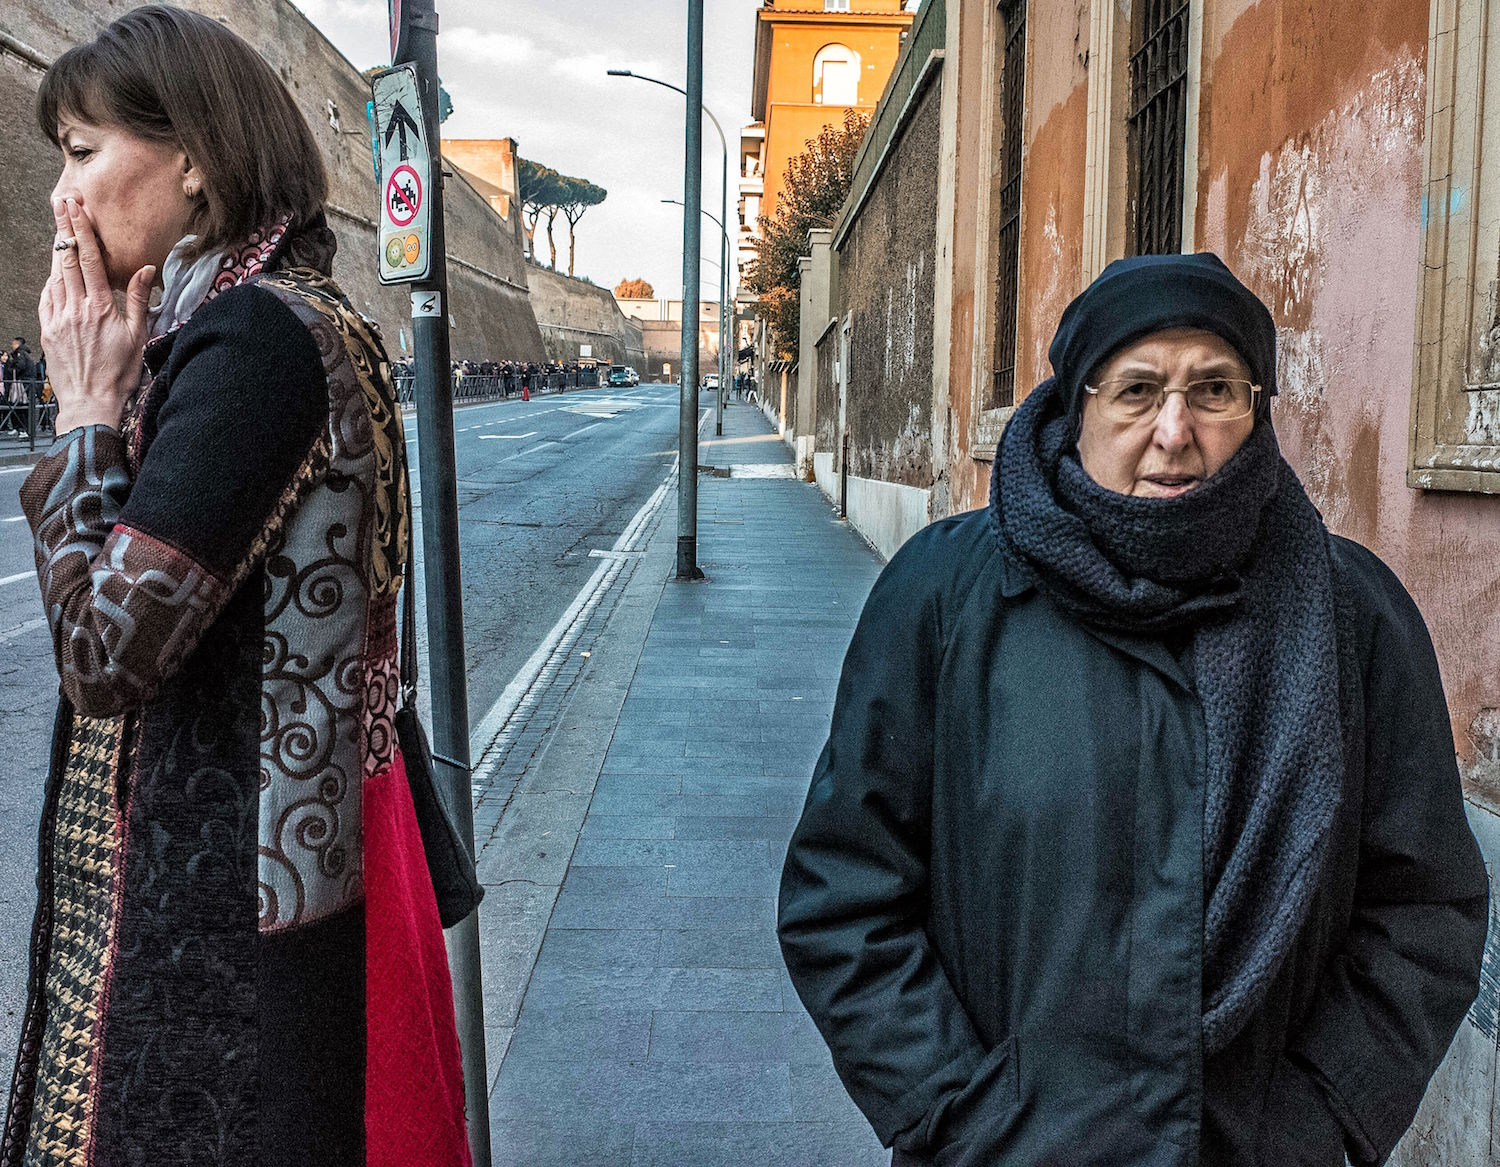 Streets of Rome - 2018.JPG